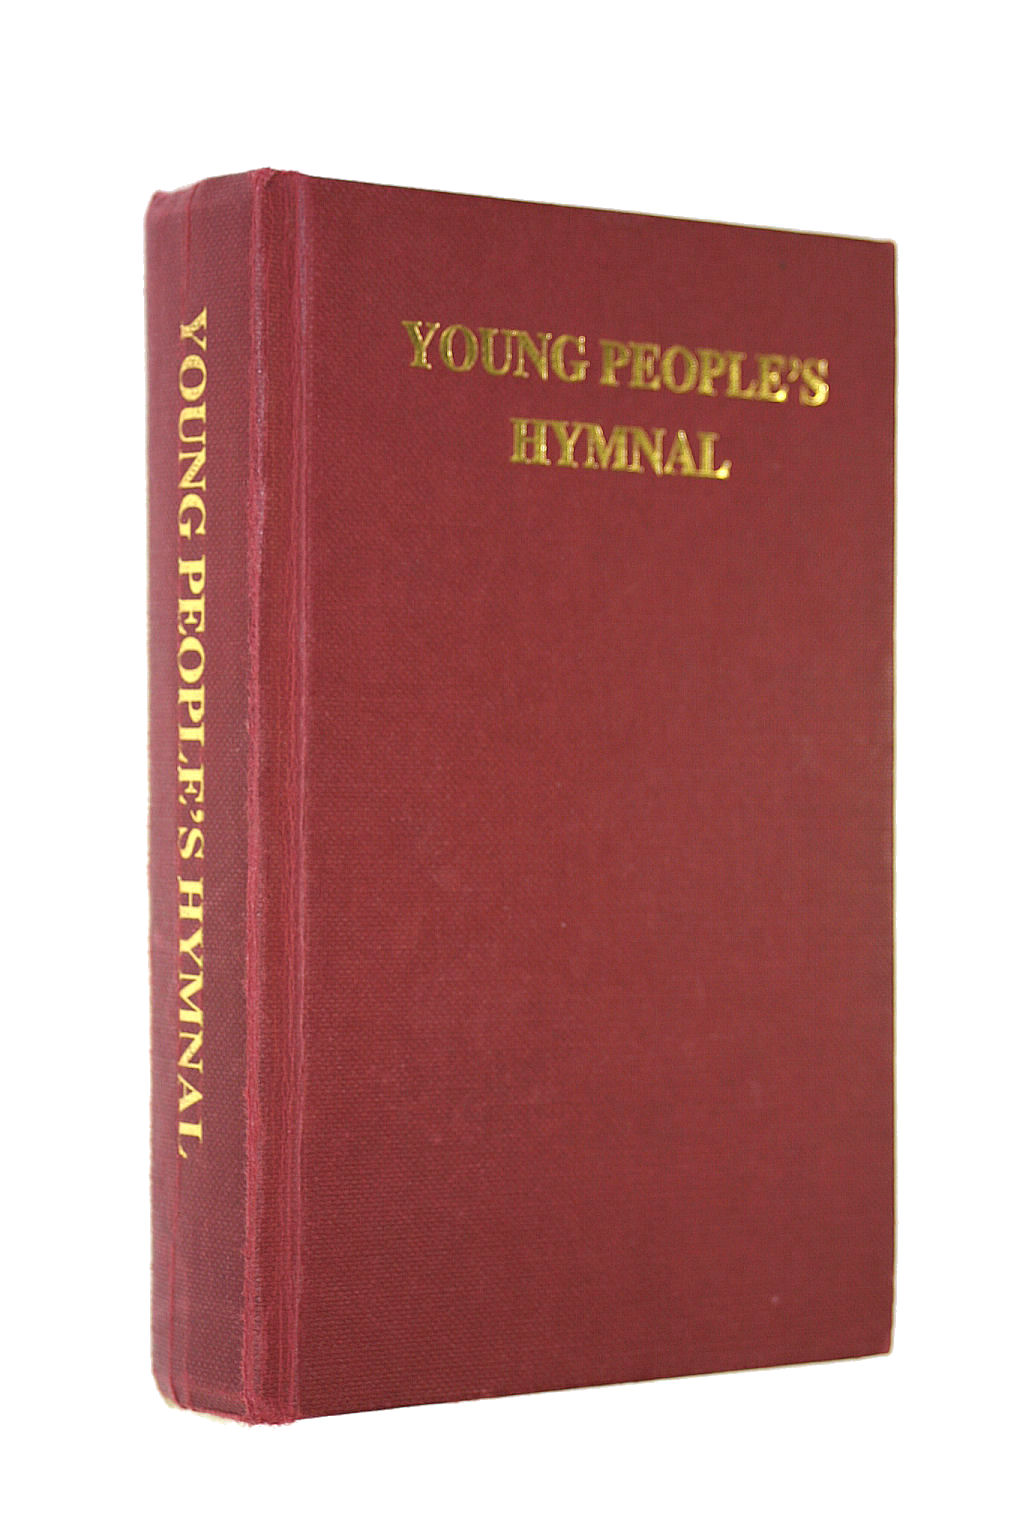 Image for Young People's Hymnal